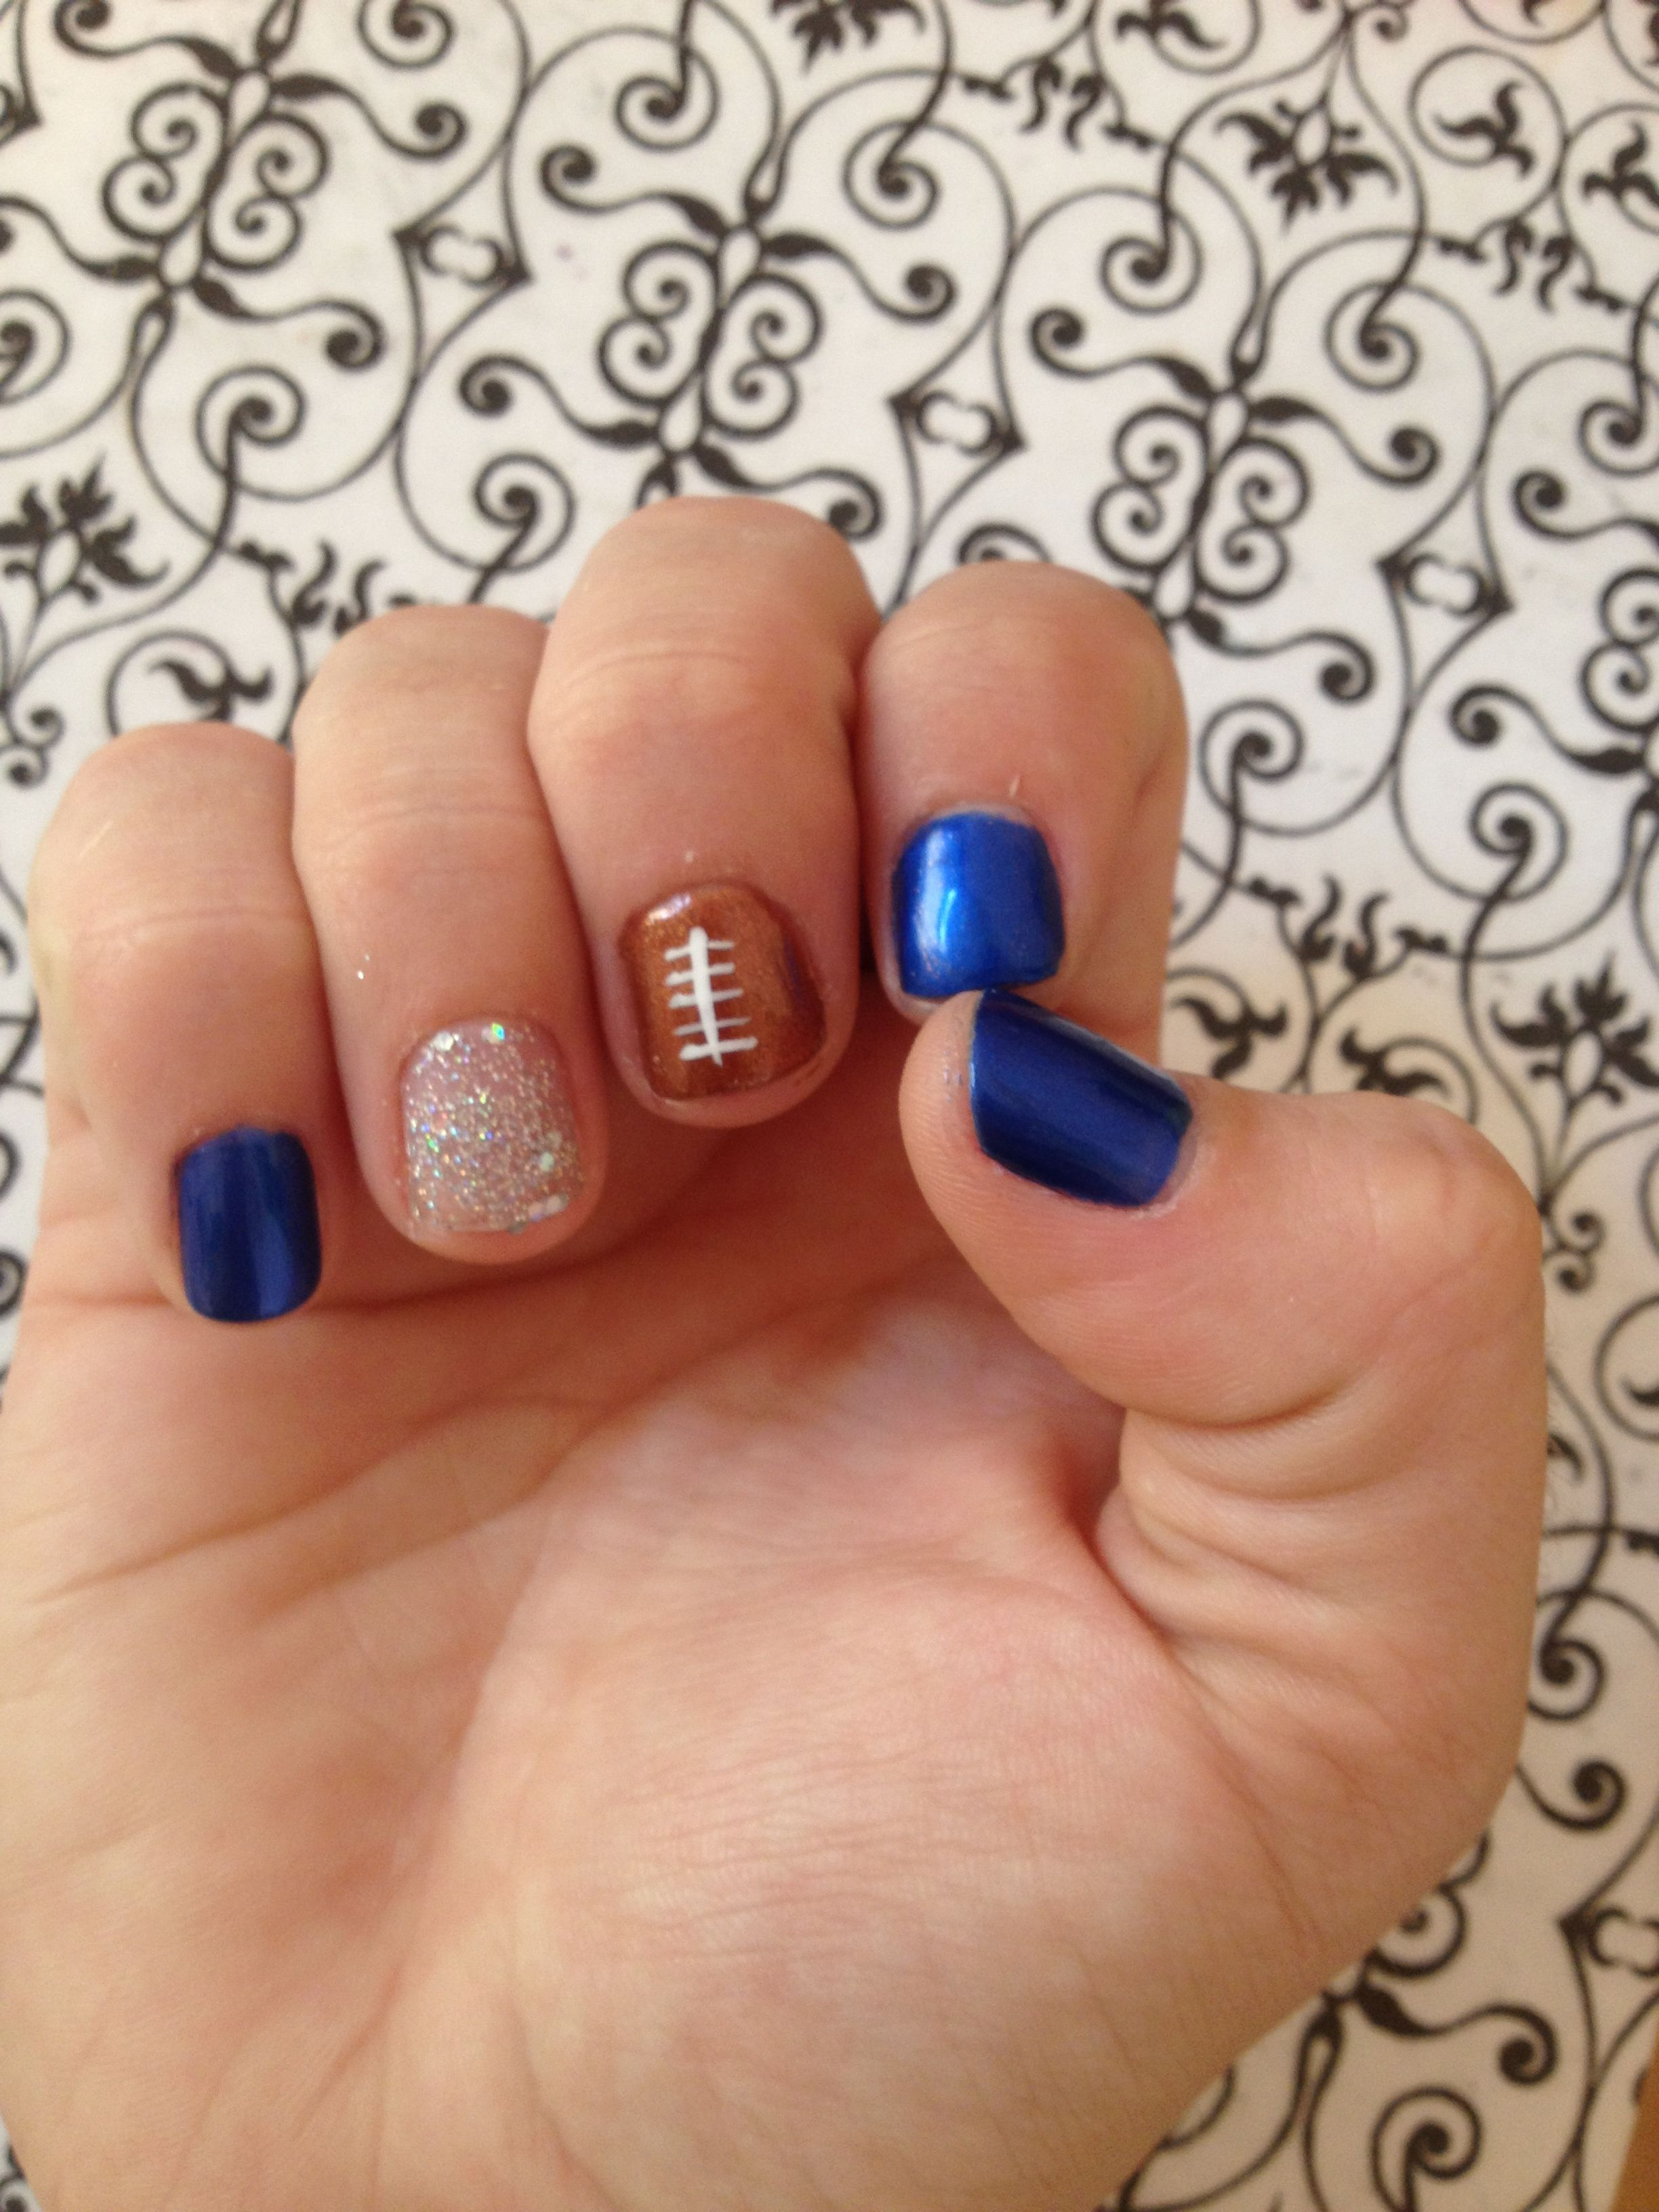 Football nails, so cute! If only I was good enough at doing nails ...